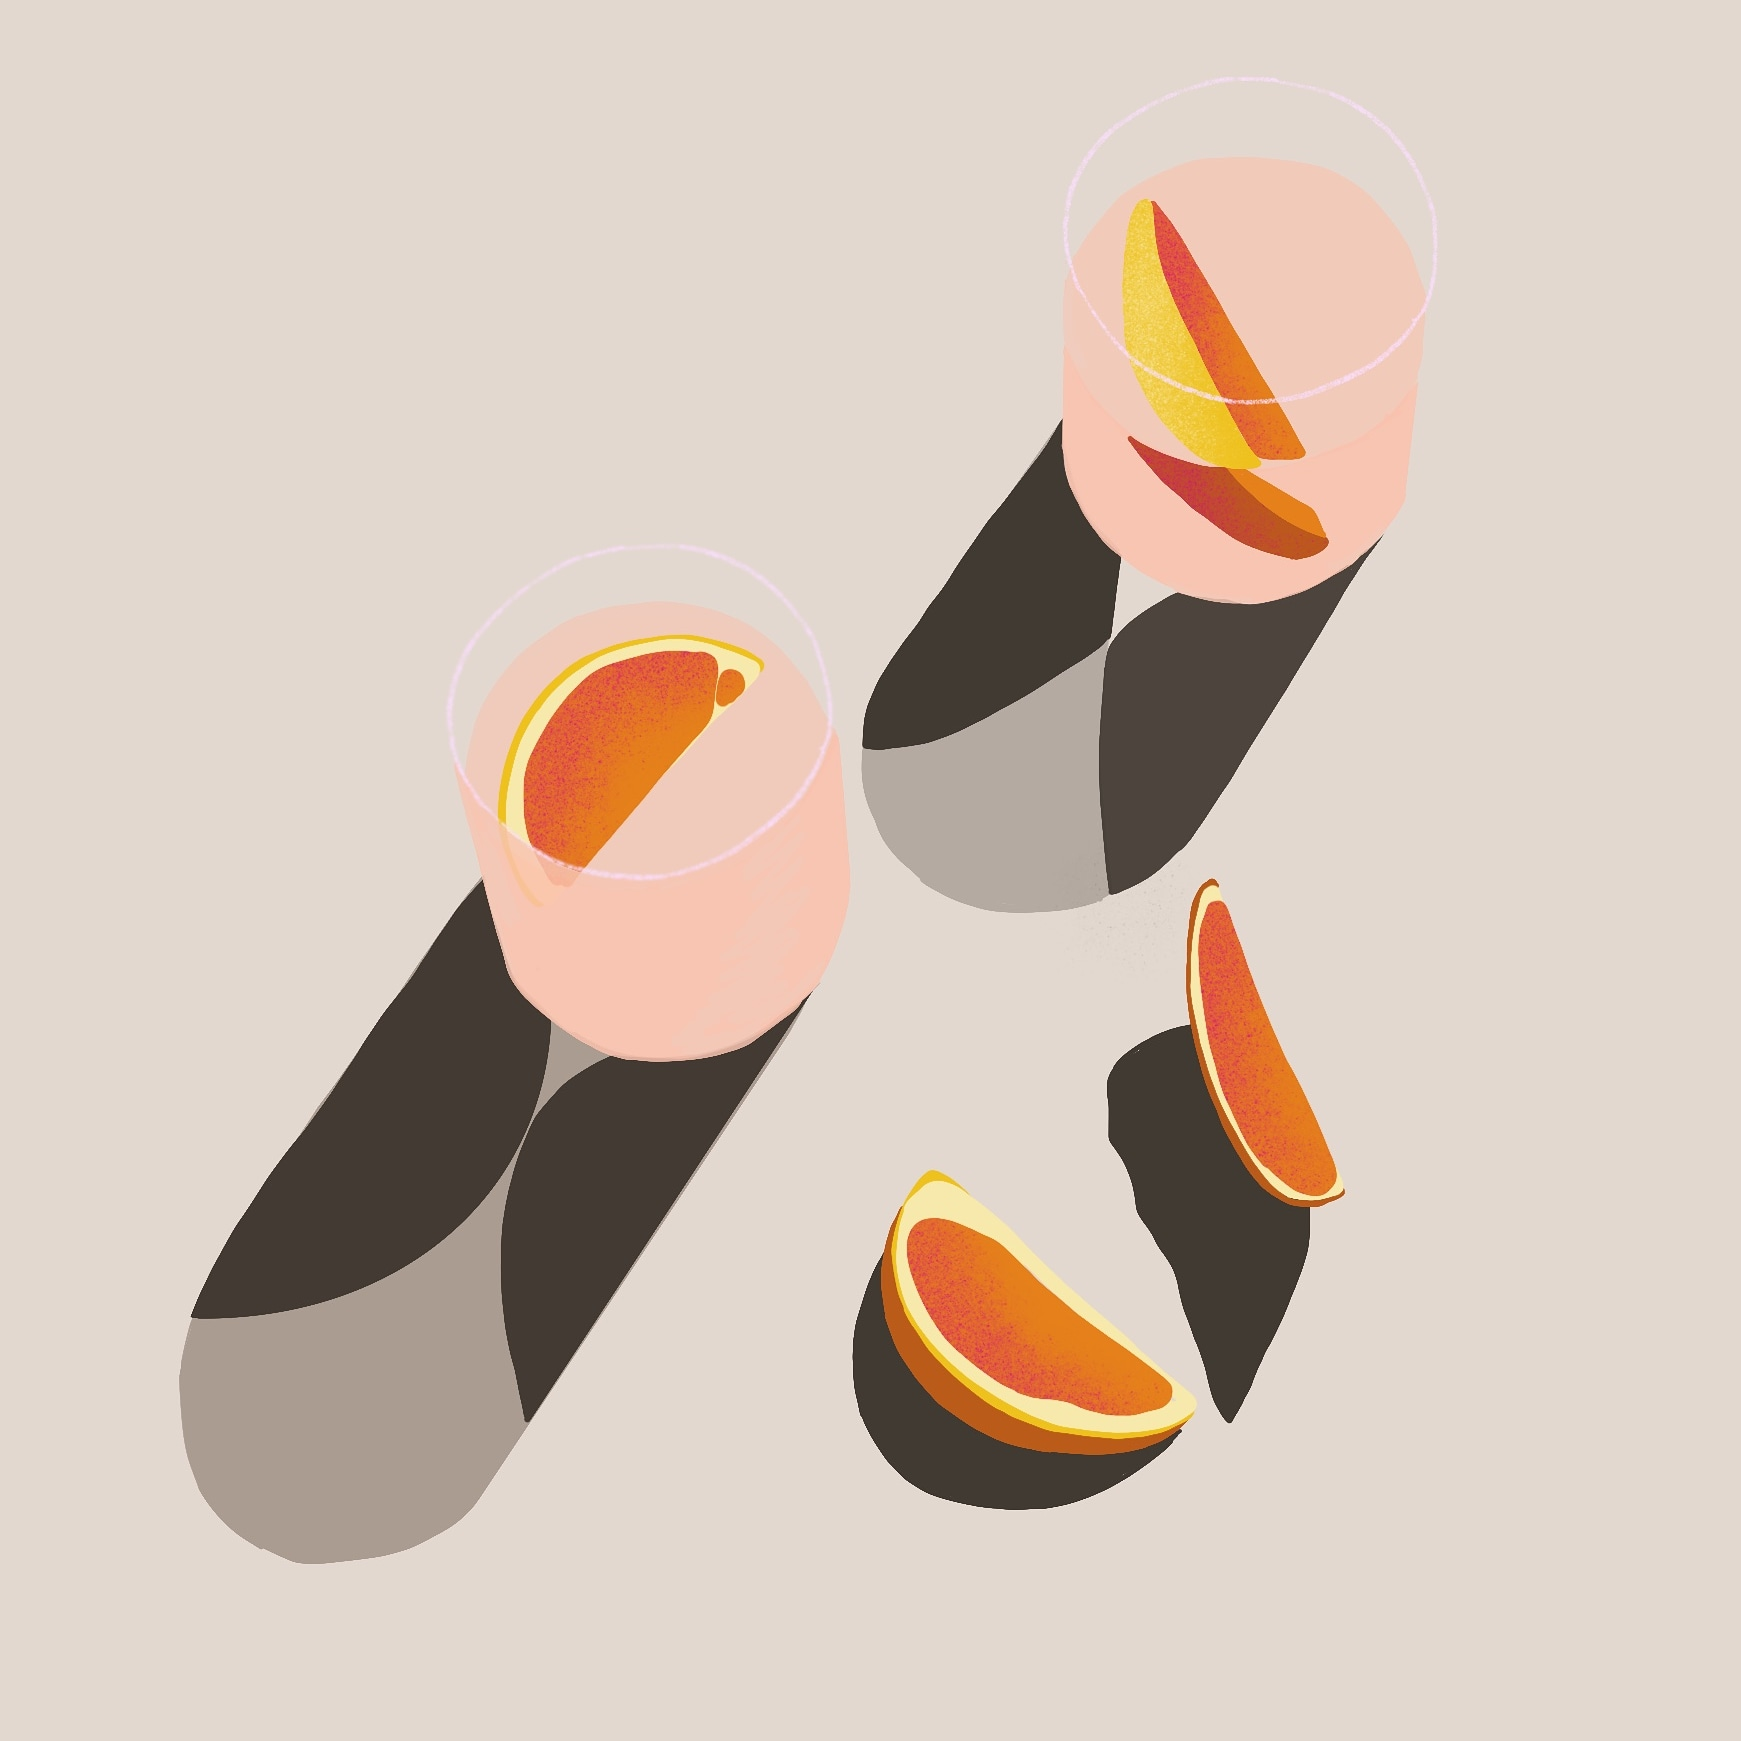 annegautier-studiodoux-illustration-food